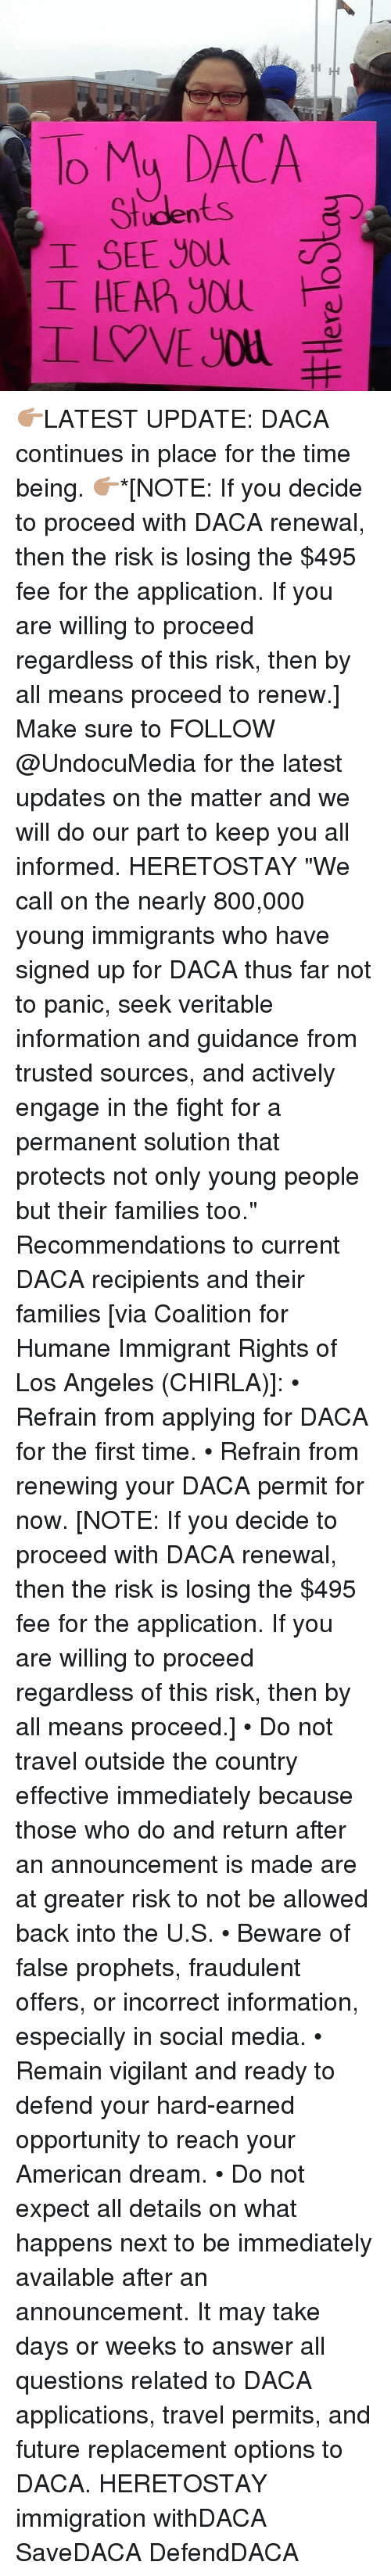 "Veritity: To My DACA  Students  I SEE you  I HEAP) you 👉🏽LATEST UPDATE: DACA continues in place for the time being. 👉🏽*[NOTE: If you decide to proceed with DACA renewal, then the risk is losing the $495 fee for the application. If you are willing to proceed regardless of this risk, then by all means proceed to renew.] Make sure to FOLLOW @UndocuMedia for the latest updates on the matter and we will do our part to keep you all informed. HERETOSTAY ""We call on the nearly 800,000 young immigrants who have signed up for DACA thus far not to panic, seek veritable information and guidance from trusted sources, and actively engage in the fight for a permanent solution that protects not only young people but their families too."" Recommendations to current DACA recipients and their families [via Coalition for Humane Immigrant Rights of Los Angeles (CHIRLA)]: • Refrain from applying for DACA for the first time. • Refrain from renewing your DACA permit for now. [NOTE: If you decide to proceed with DACA renewal, then the risk is losing the $495 fee for the application. If you are willing to proceed regardless of this risk, then by all means proceed.] • Do not travel outside the country effective immediately because those who do and return after an announcement is made are at greater risk to not be allowed back into the U.S. • Beware of false prophets, fraudulent offers, or incorrect information, especially in social media. • Remain vigilant and ready to defend your hard-earned opportunity to reach your American dream. • Do not expect all details on what happens next to be immediately available after an announcement. It may take days or weeks to answer all questions related to DACA applications, travel permits, and future replacement options to DACA. HERETOSTAY immigration withDACA SaveDACA DefendDACA"